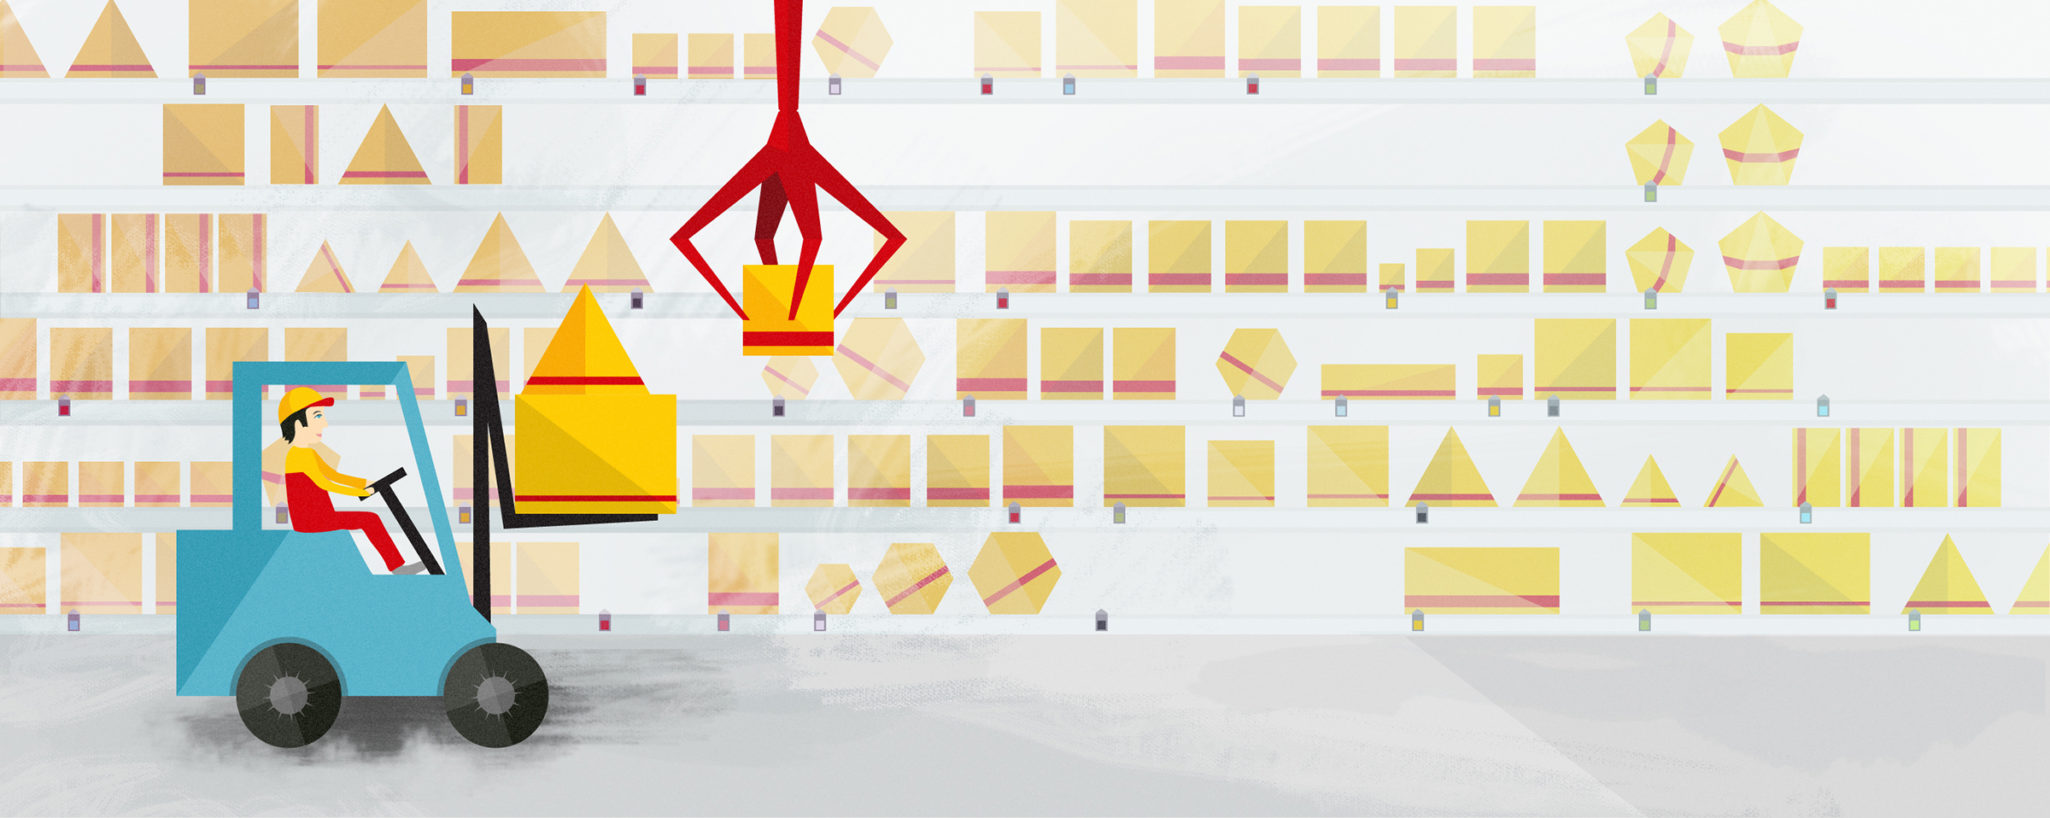 Styleframe illustration for DHL animation: Logistic center